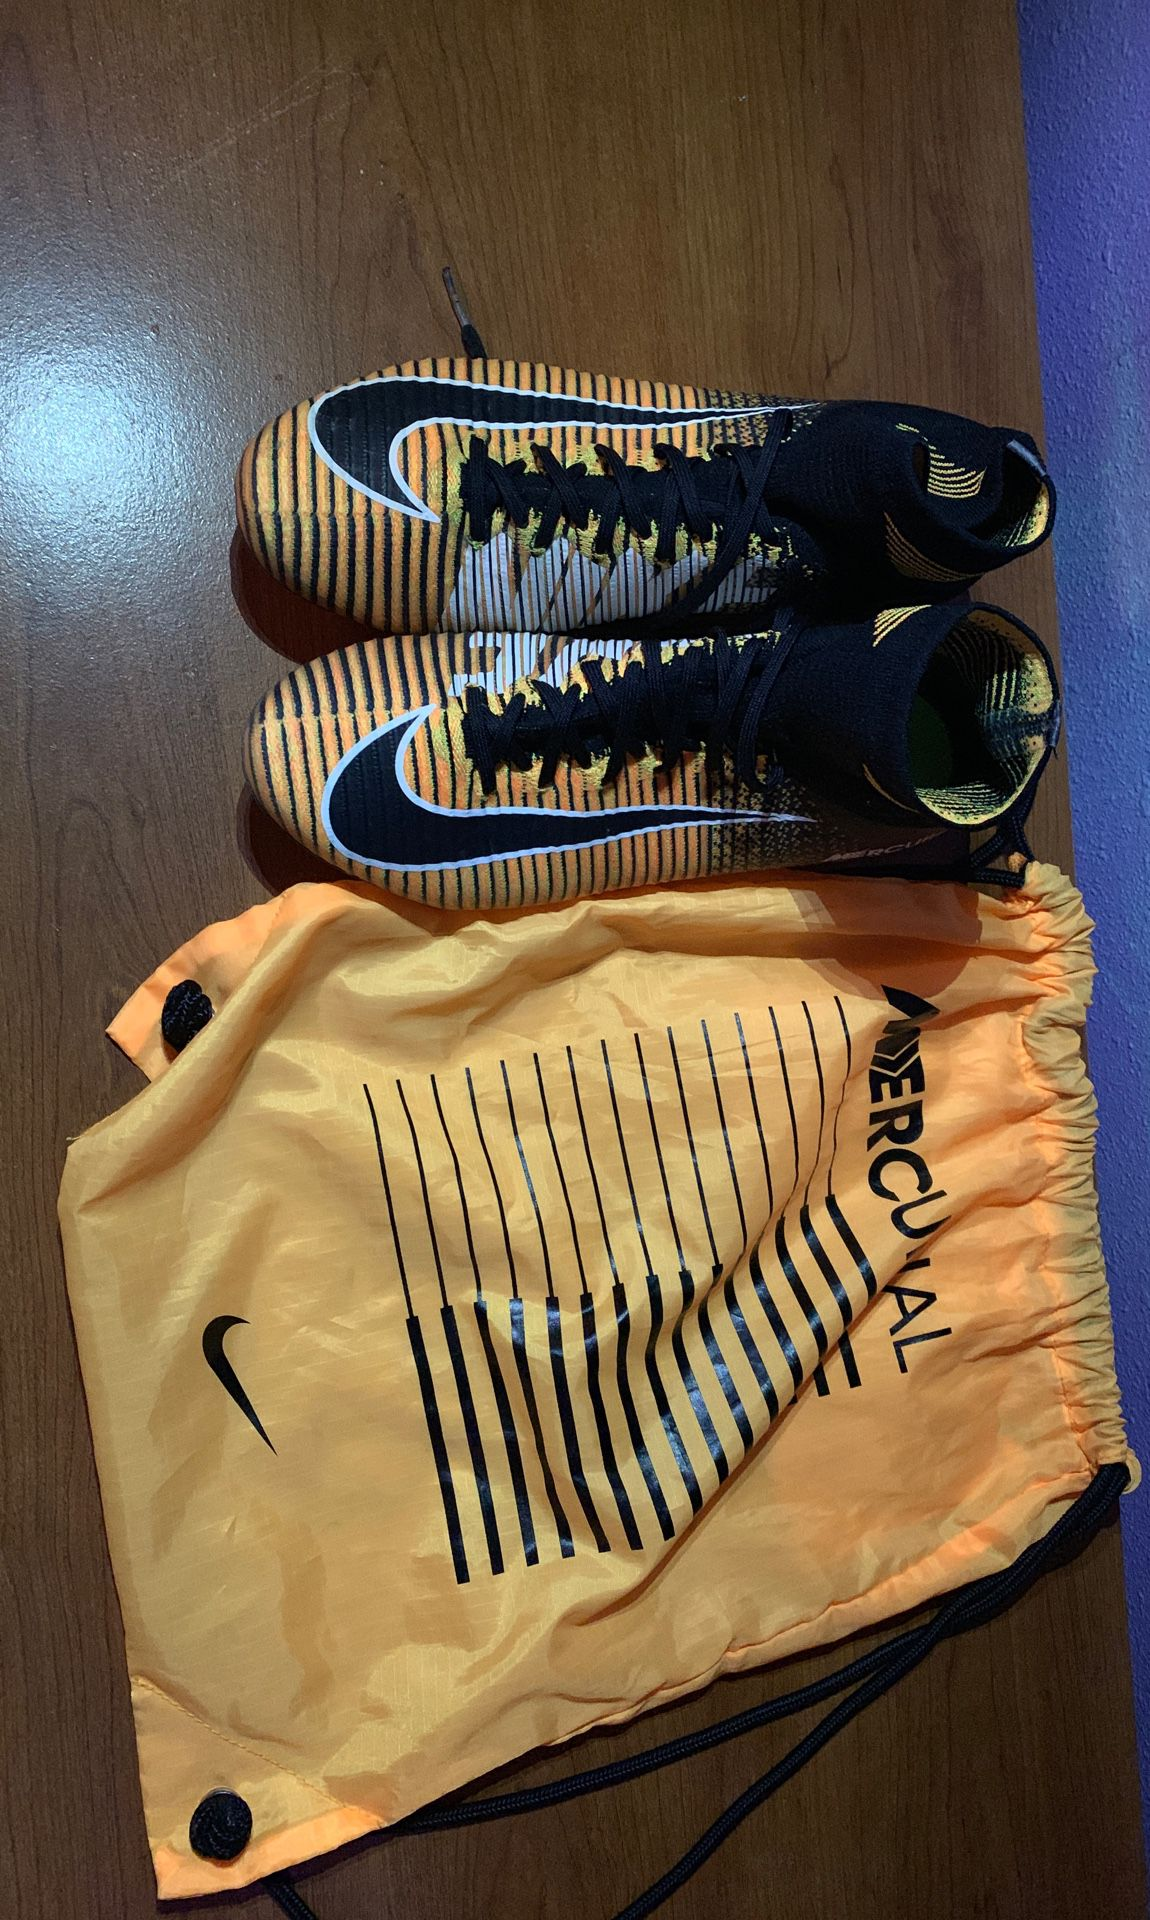 Mercurial superfly 5 outdoor soccer shoes